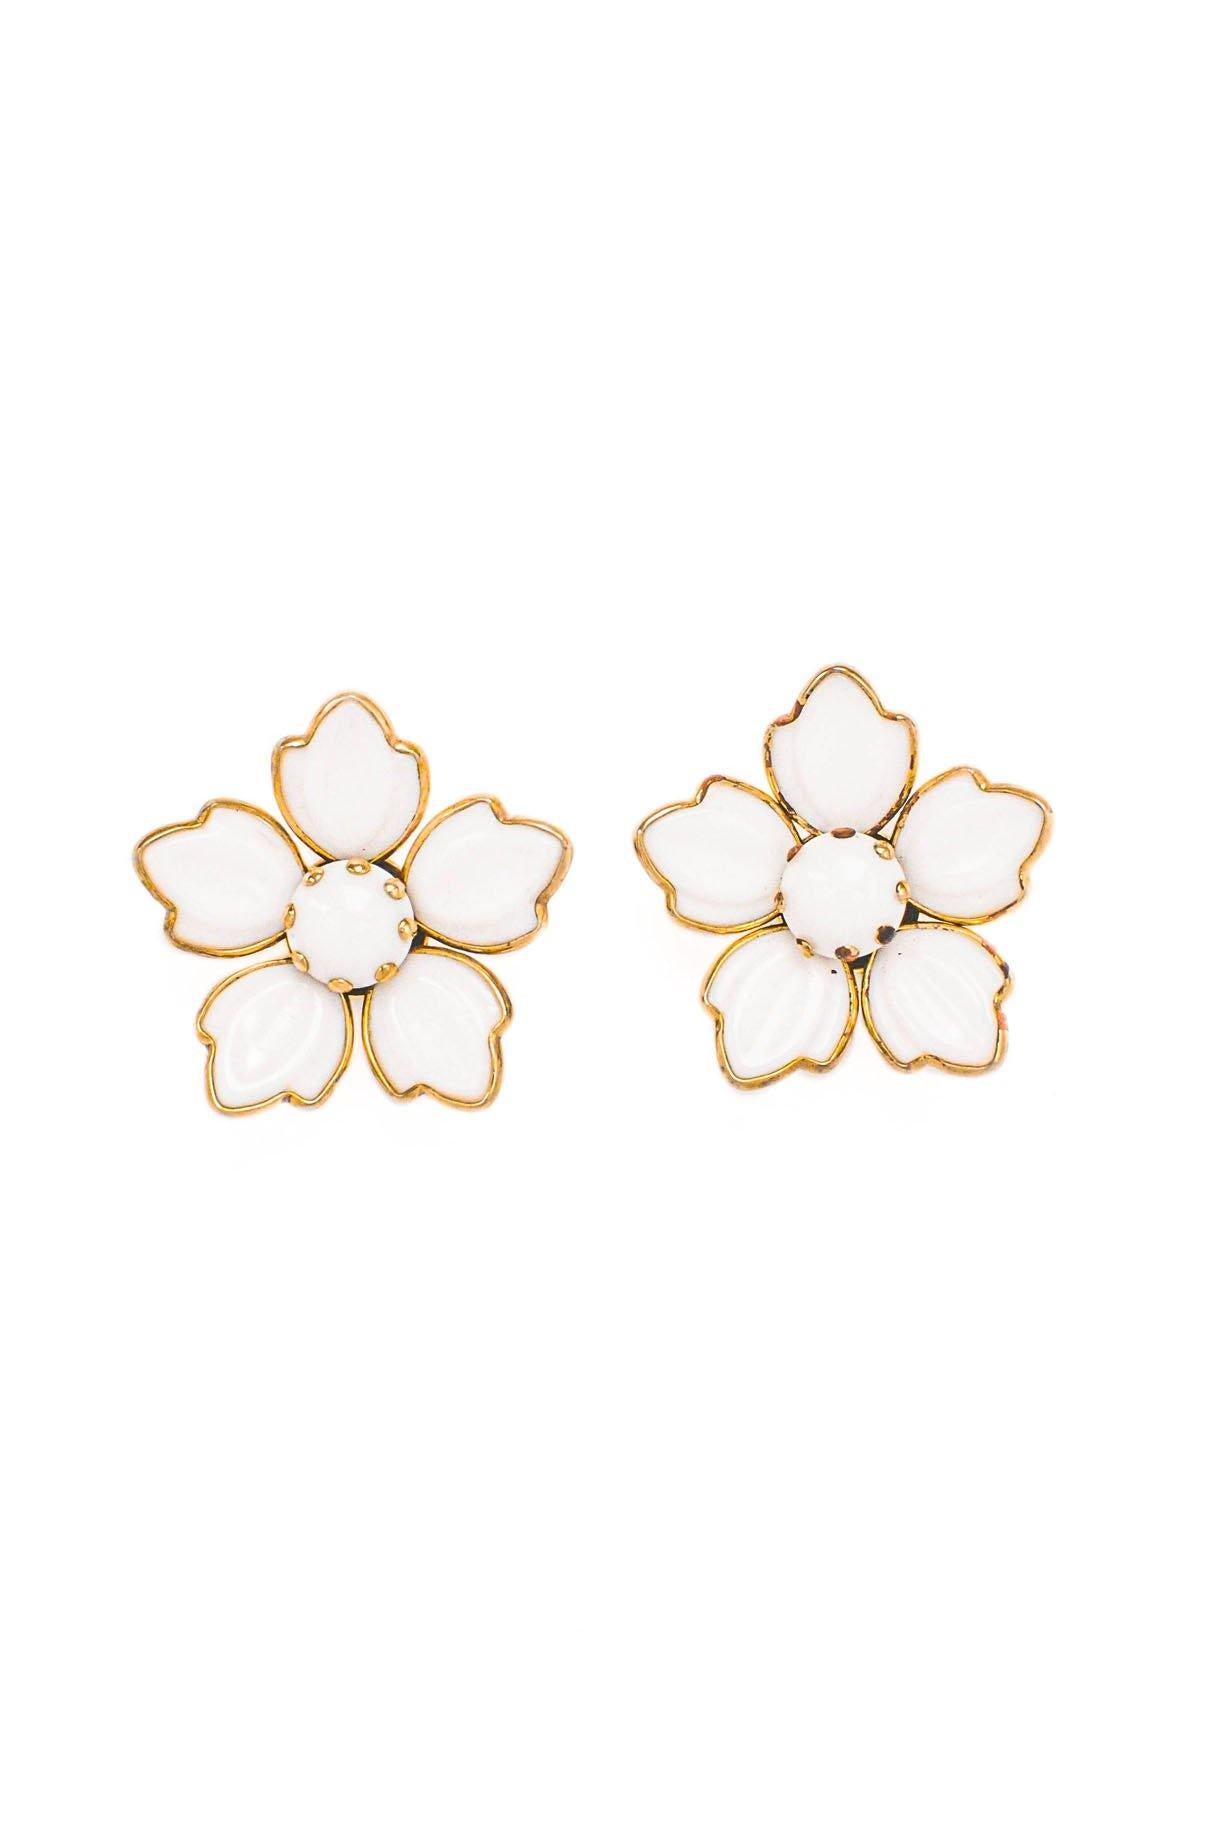 Vintage White Flower Clip-on Earrings from Sweet and Spark